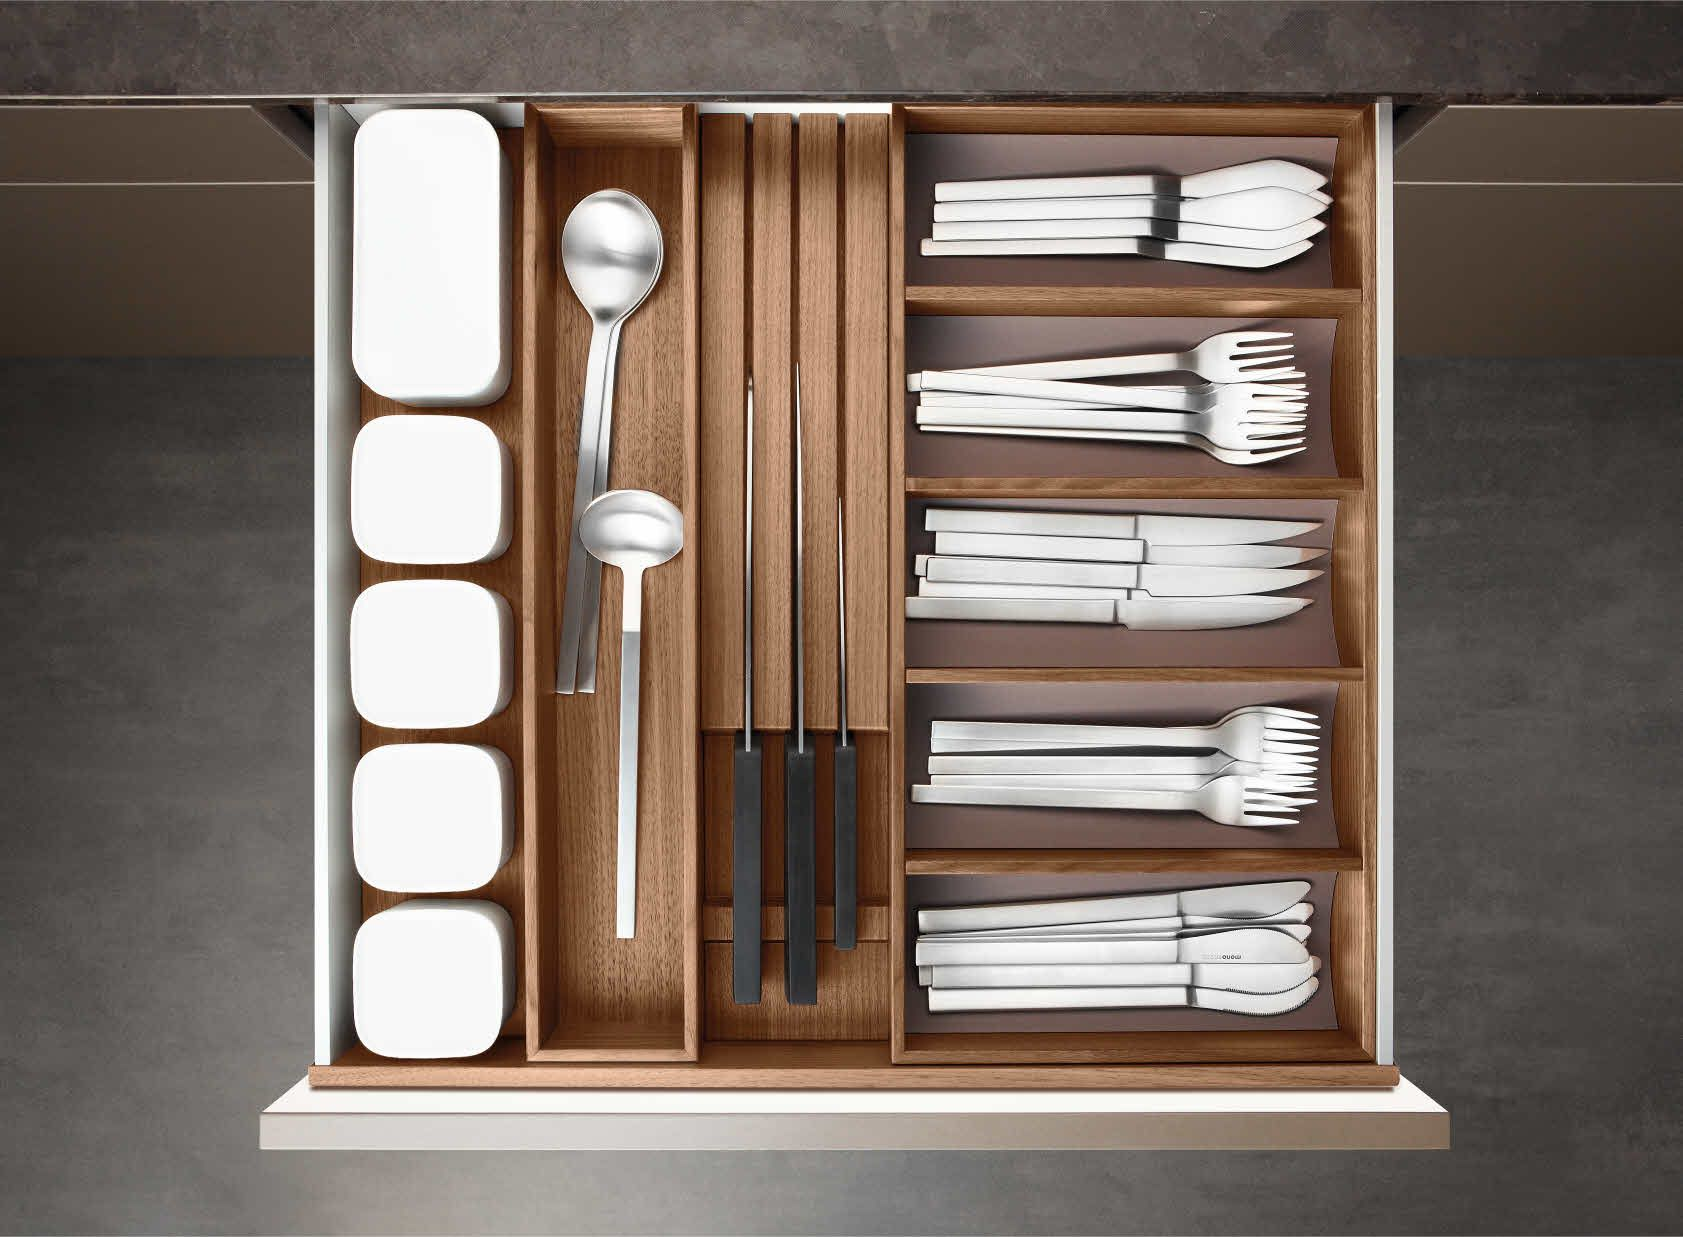 buy detail drawer rubber wood block product knife drawers